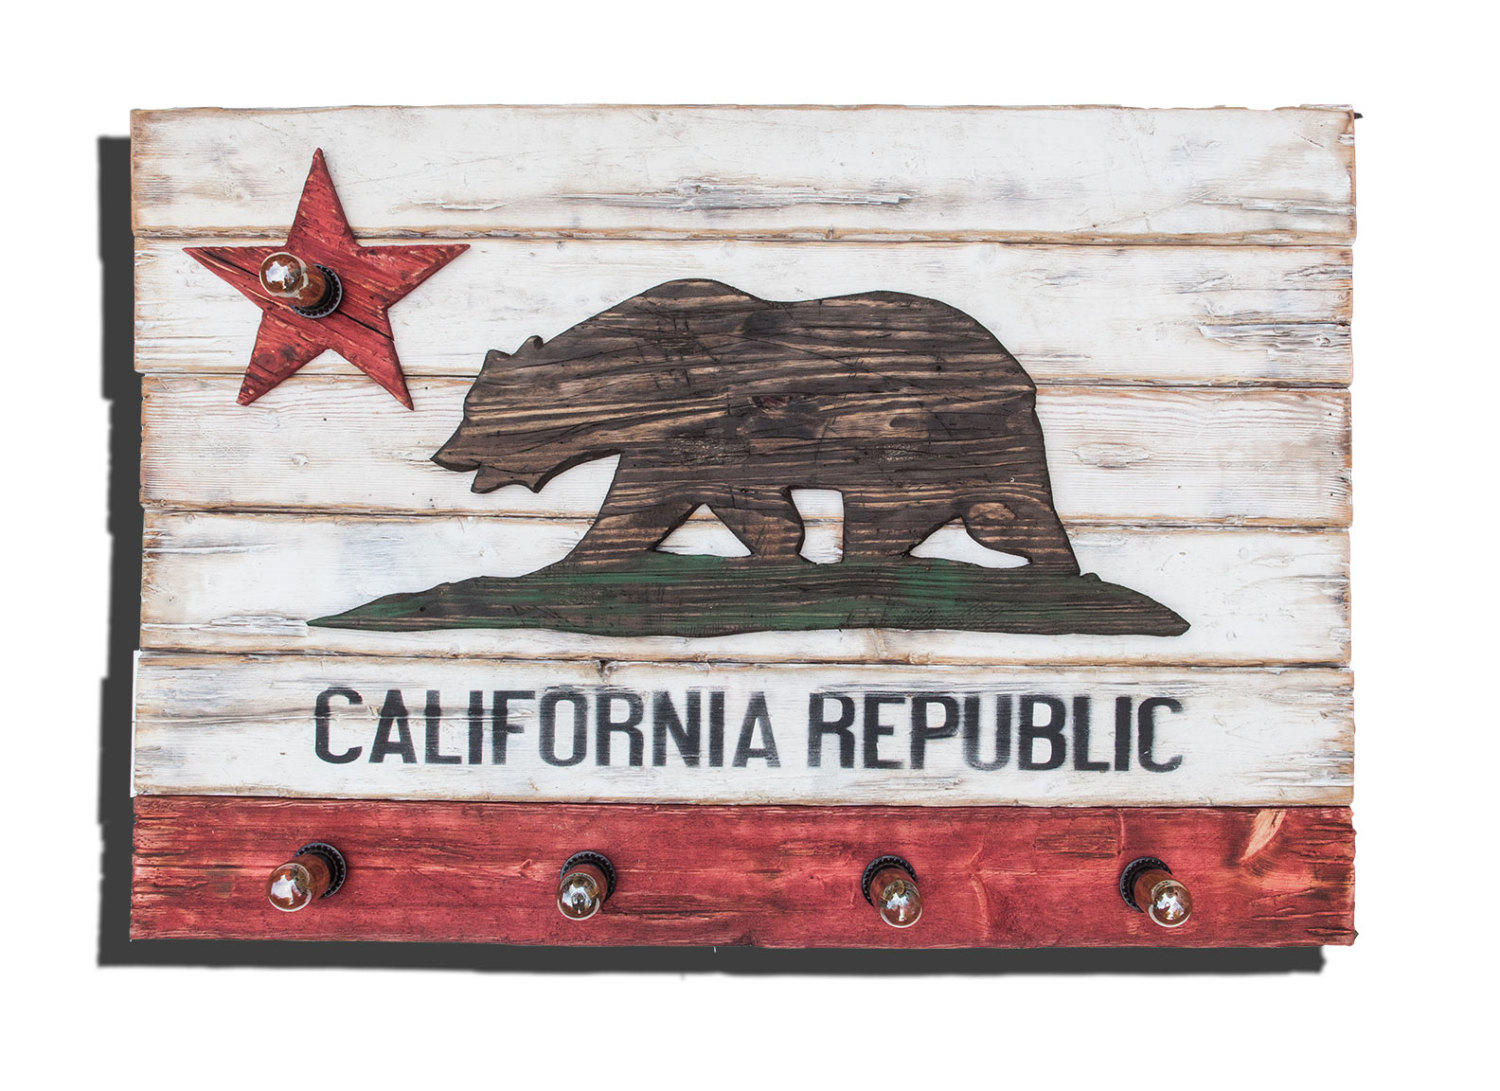 Weathered Wood One Of A Kind California Republic Flag. Hawaiian Bedroom Decor. Baby Name Decor. Decorative Compass. Christmas Decorators For Hire. Furniture Dining Room. Halloween Bedroom Decor. Dining Room Table And Chairs Set. Traditional Wall Decor